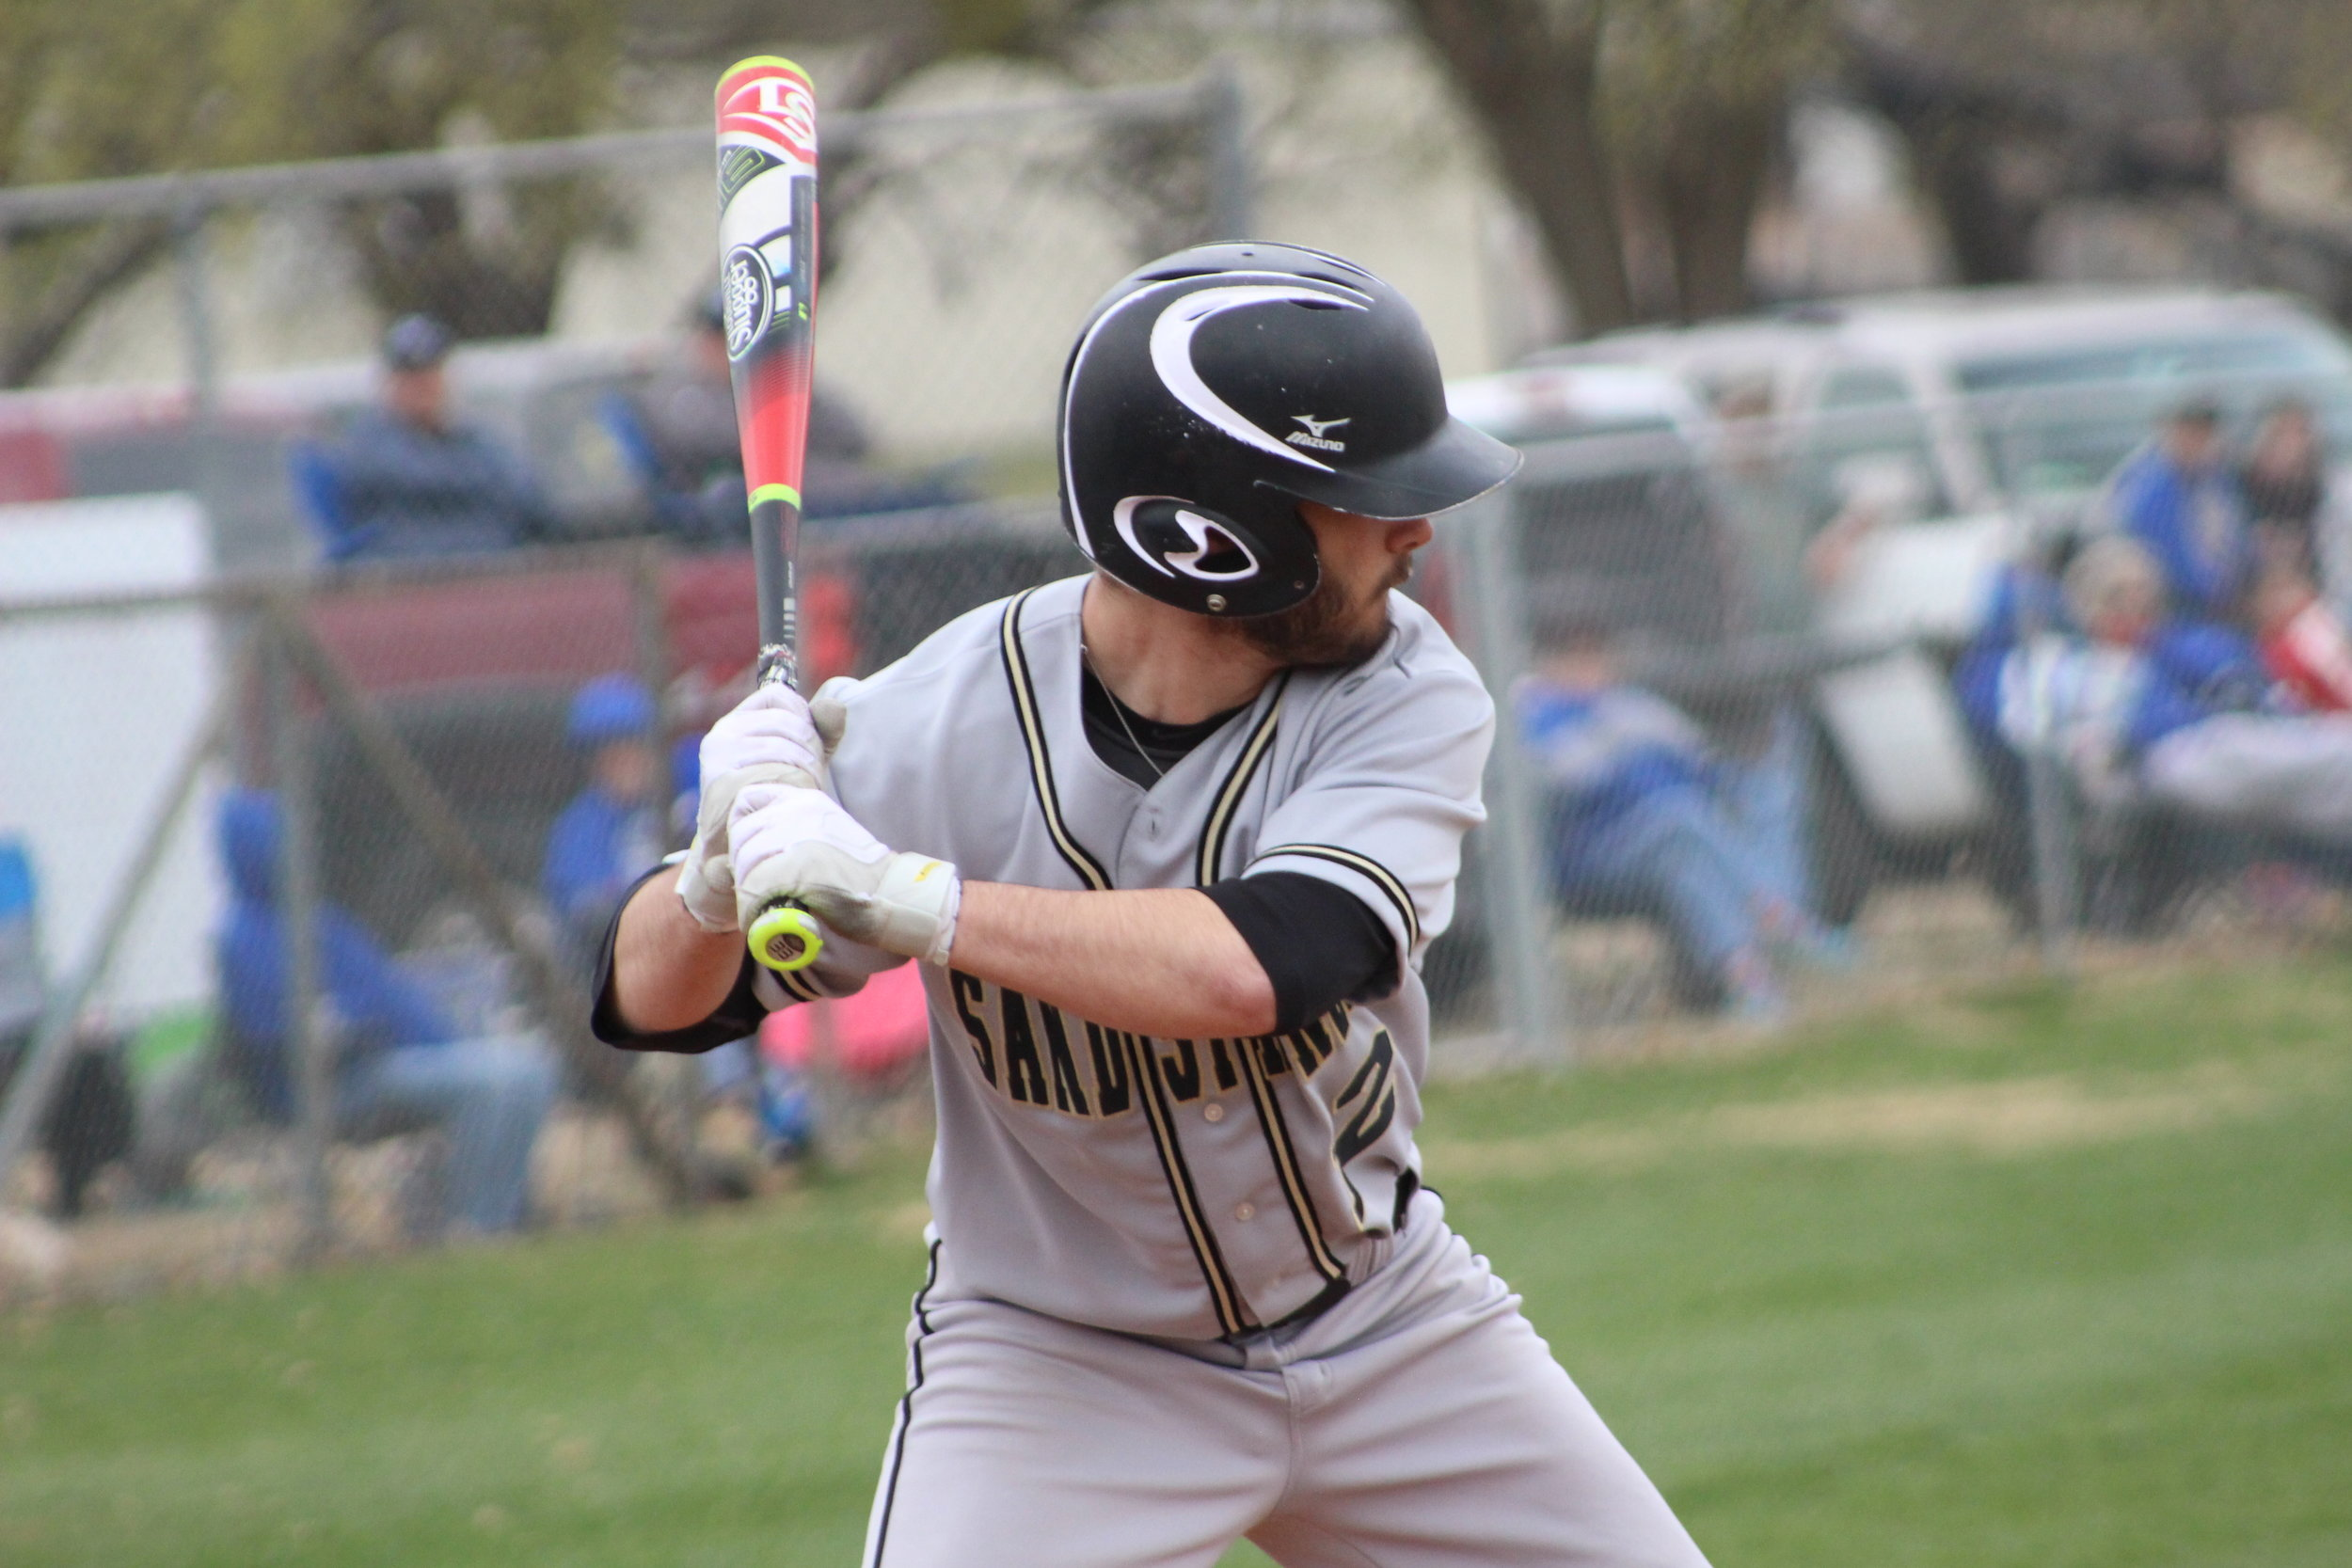 Treyce Tolbert scored the lone RBI in a 5-1 loss to Enid Tuesday night. (Photo: Scott Emigh).